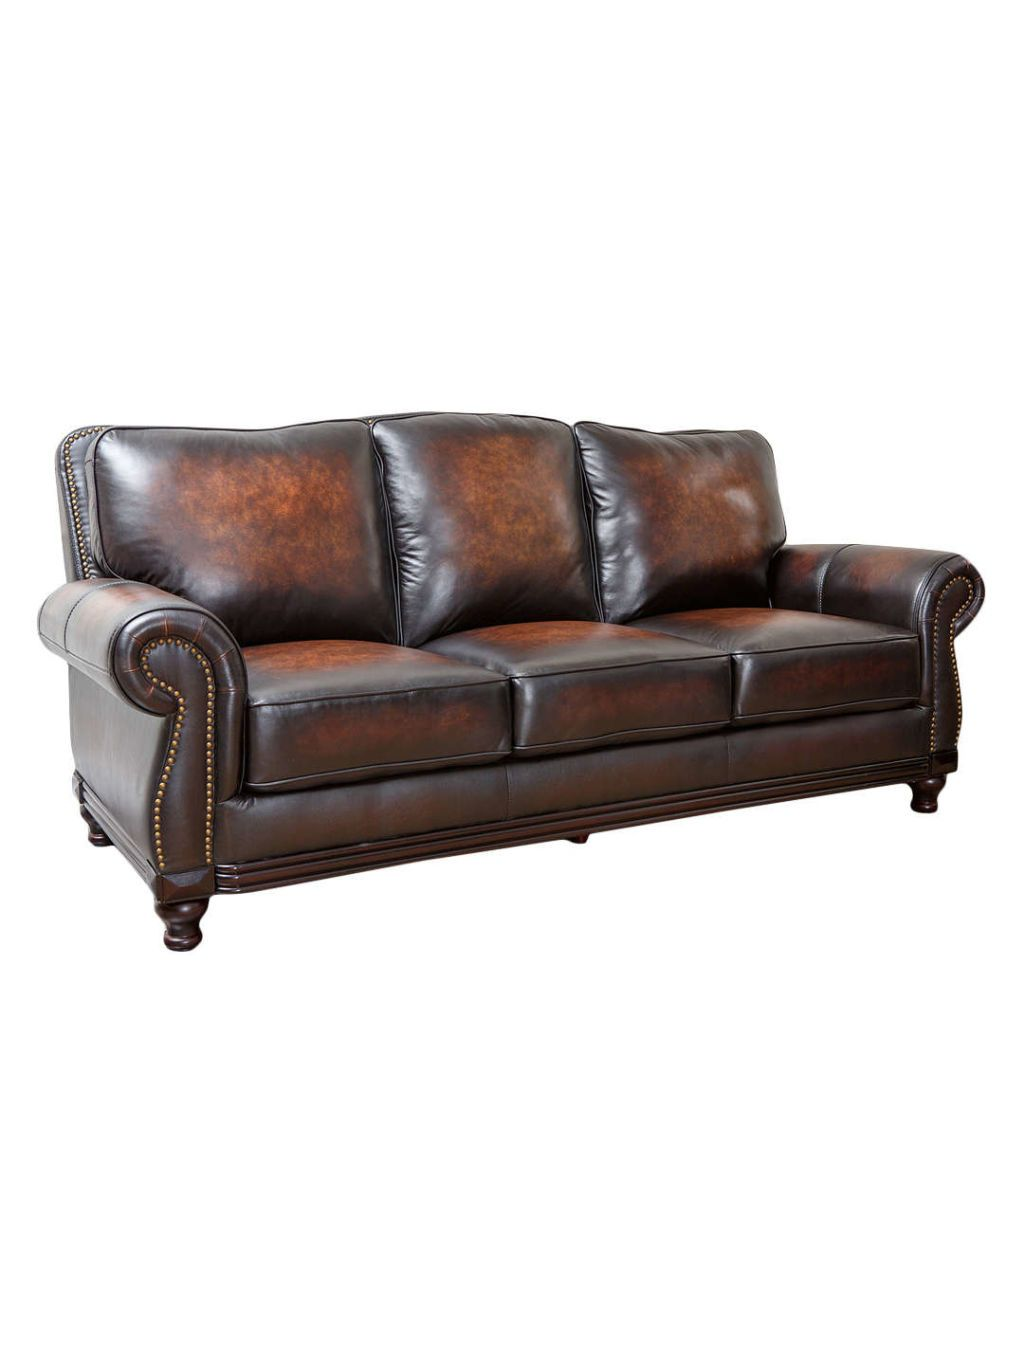 Your Den Isn T Complete Without This Comfy Furniture Piece Genuine Leather Sofa Abbyson Living Leather Sofa